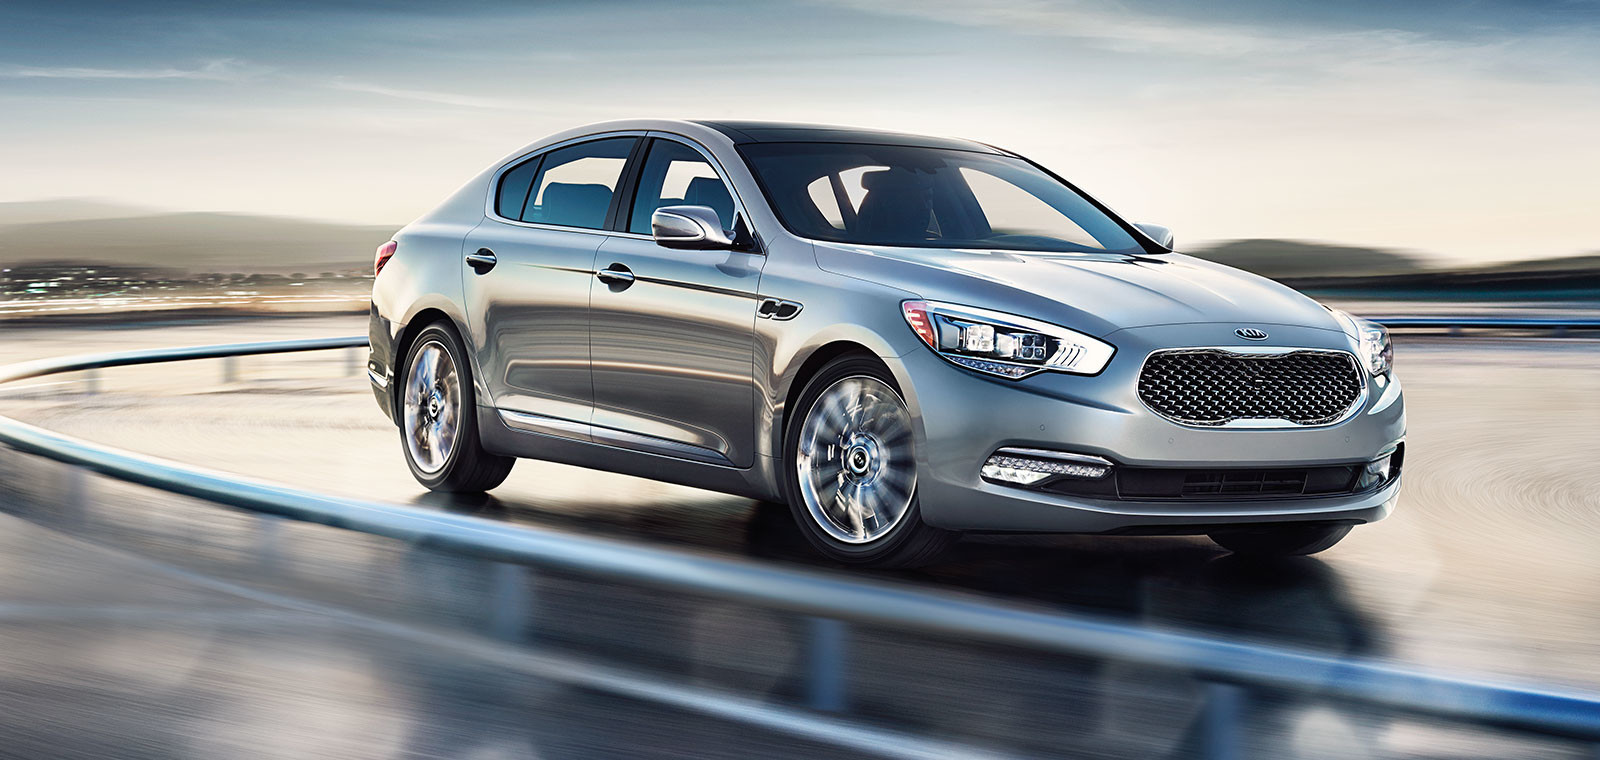 New 2015 Kia K900 moving| Quirk Kia in Manchester NH